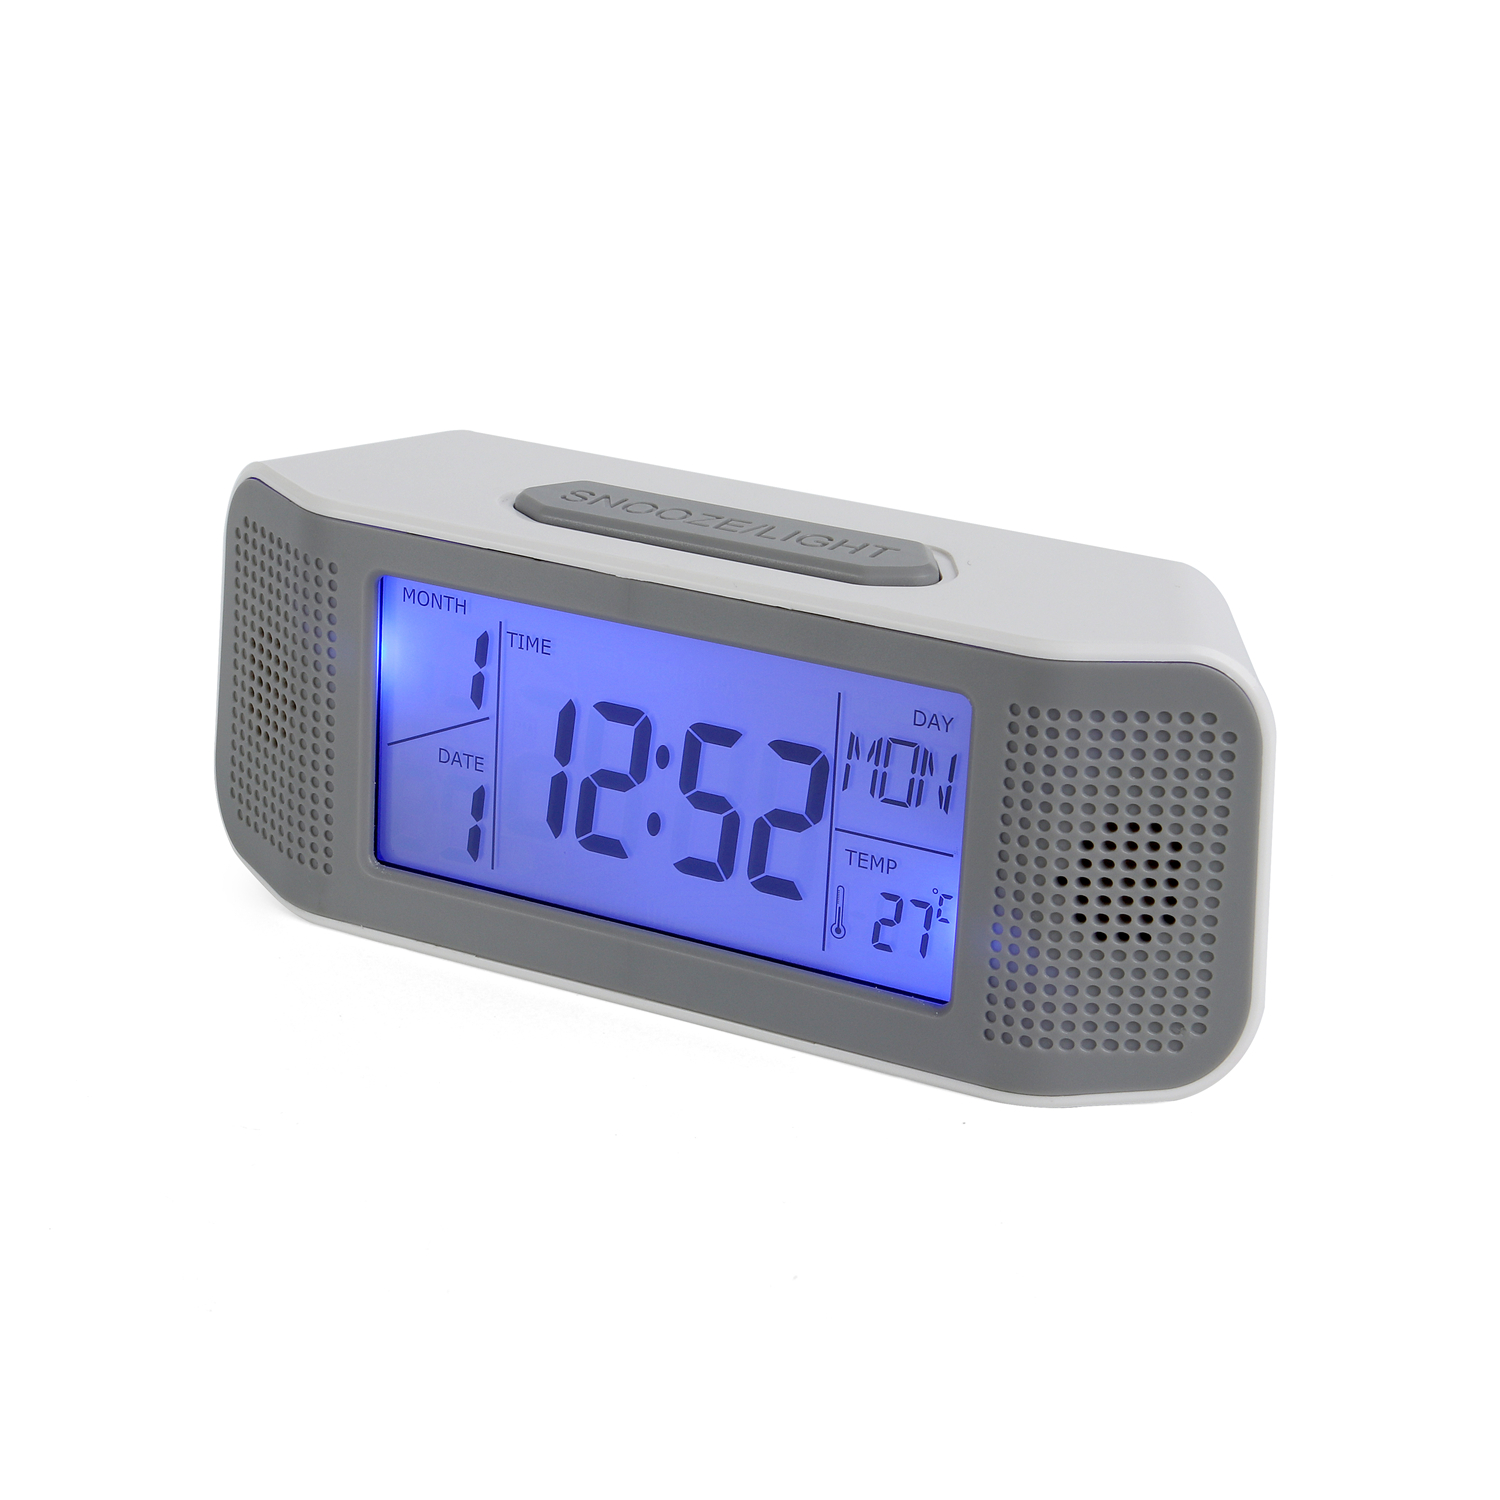 lcd clock table souvenirs clock gifts desktop clock